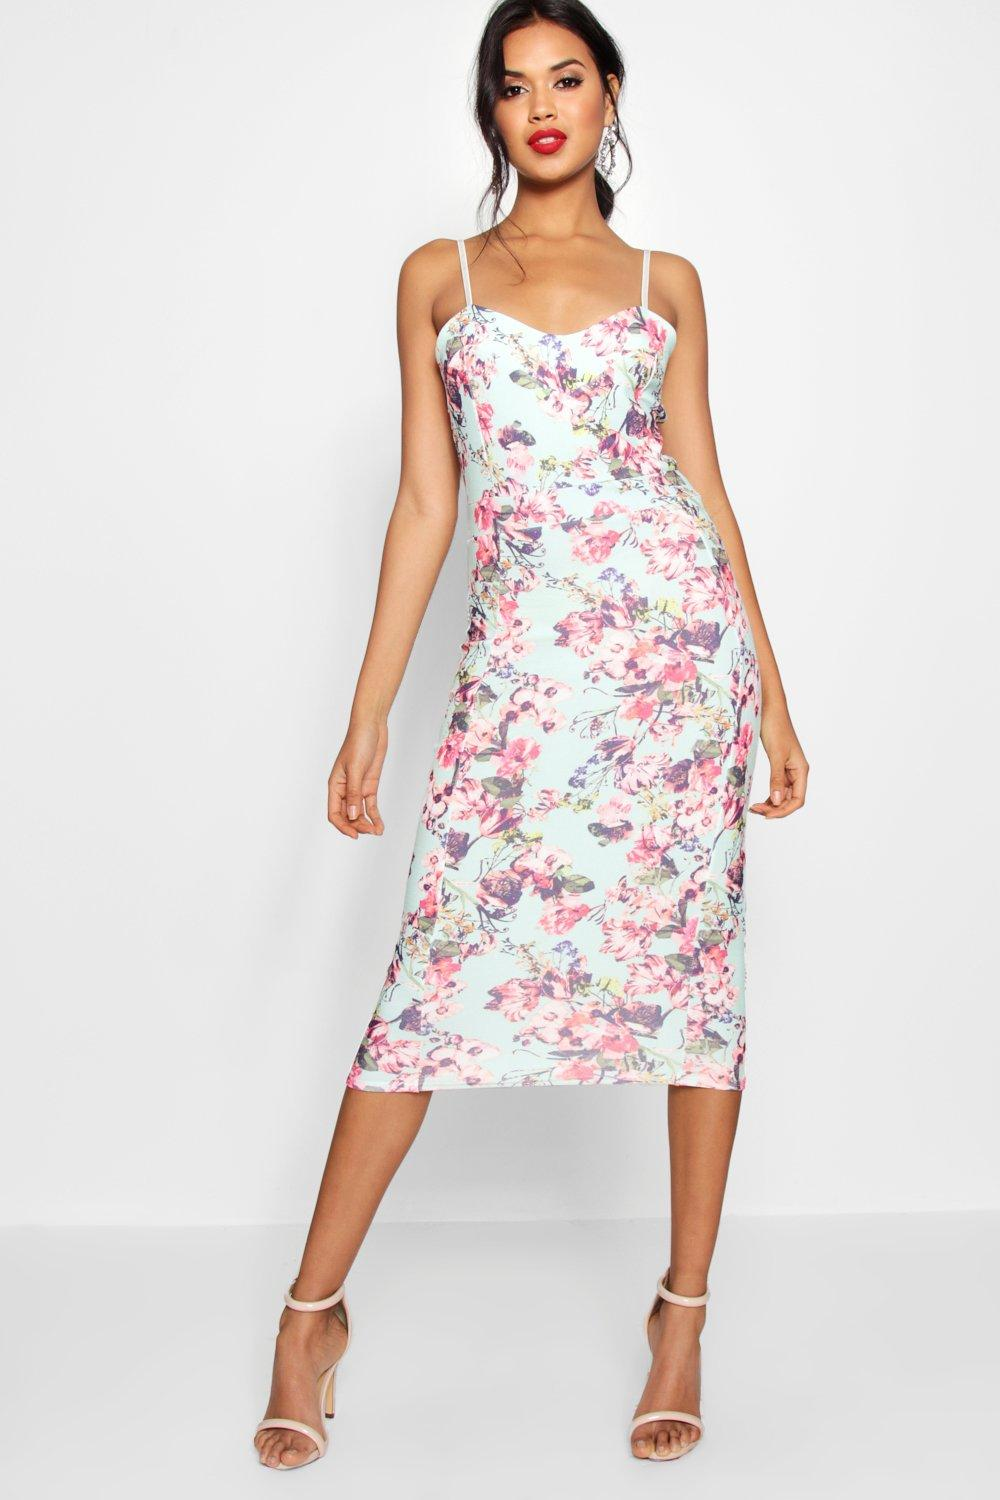 Faye Floral Print Strappy Midi Bodycon Dress at boohoo.com